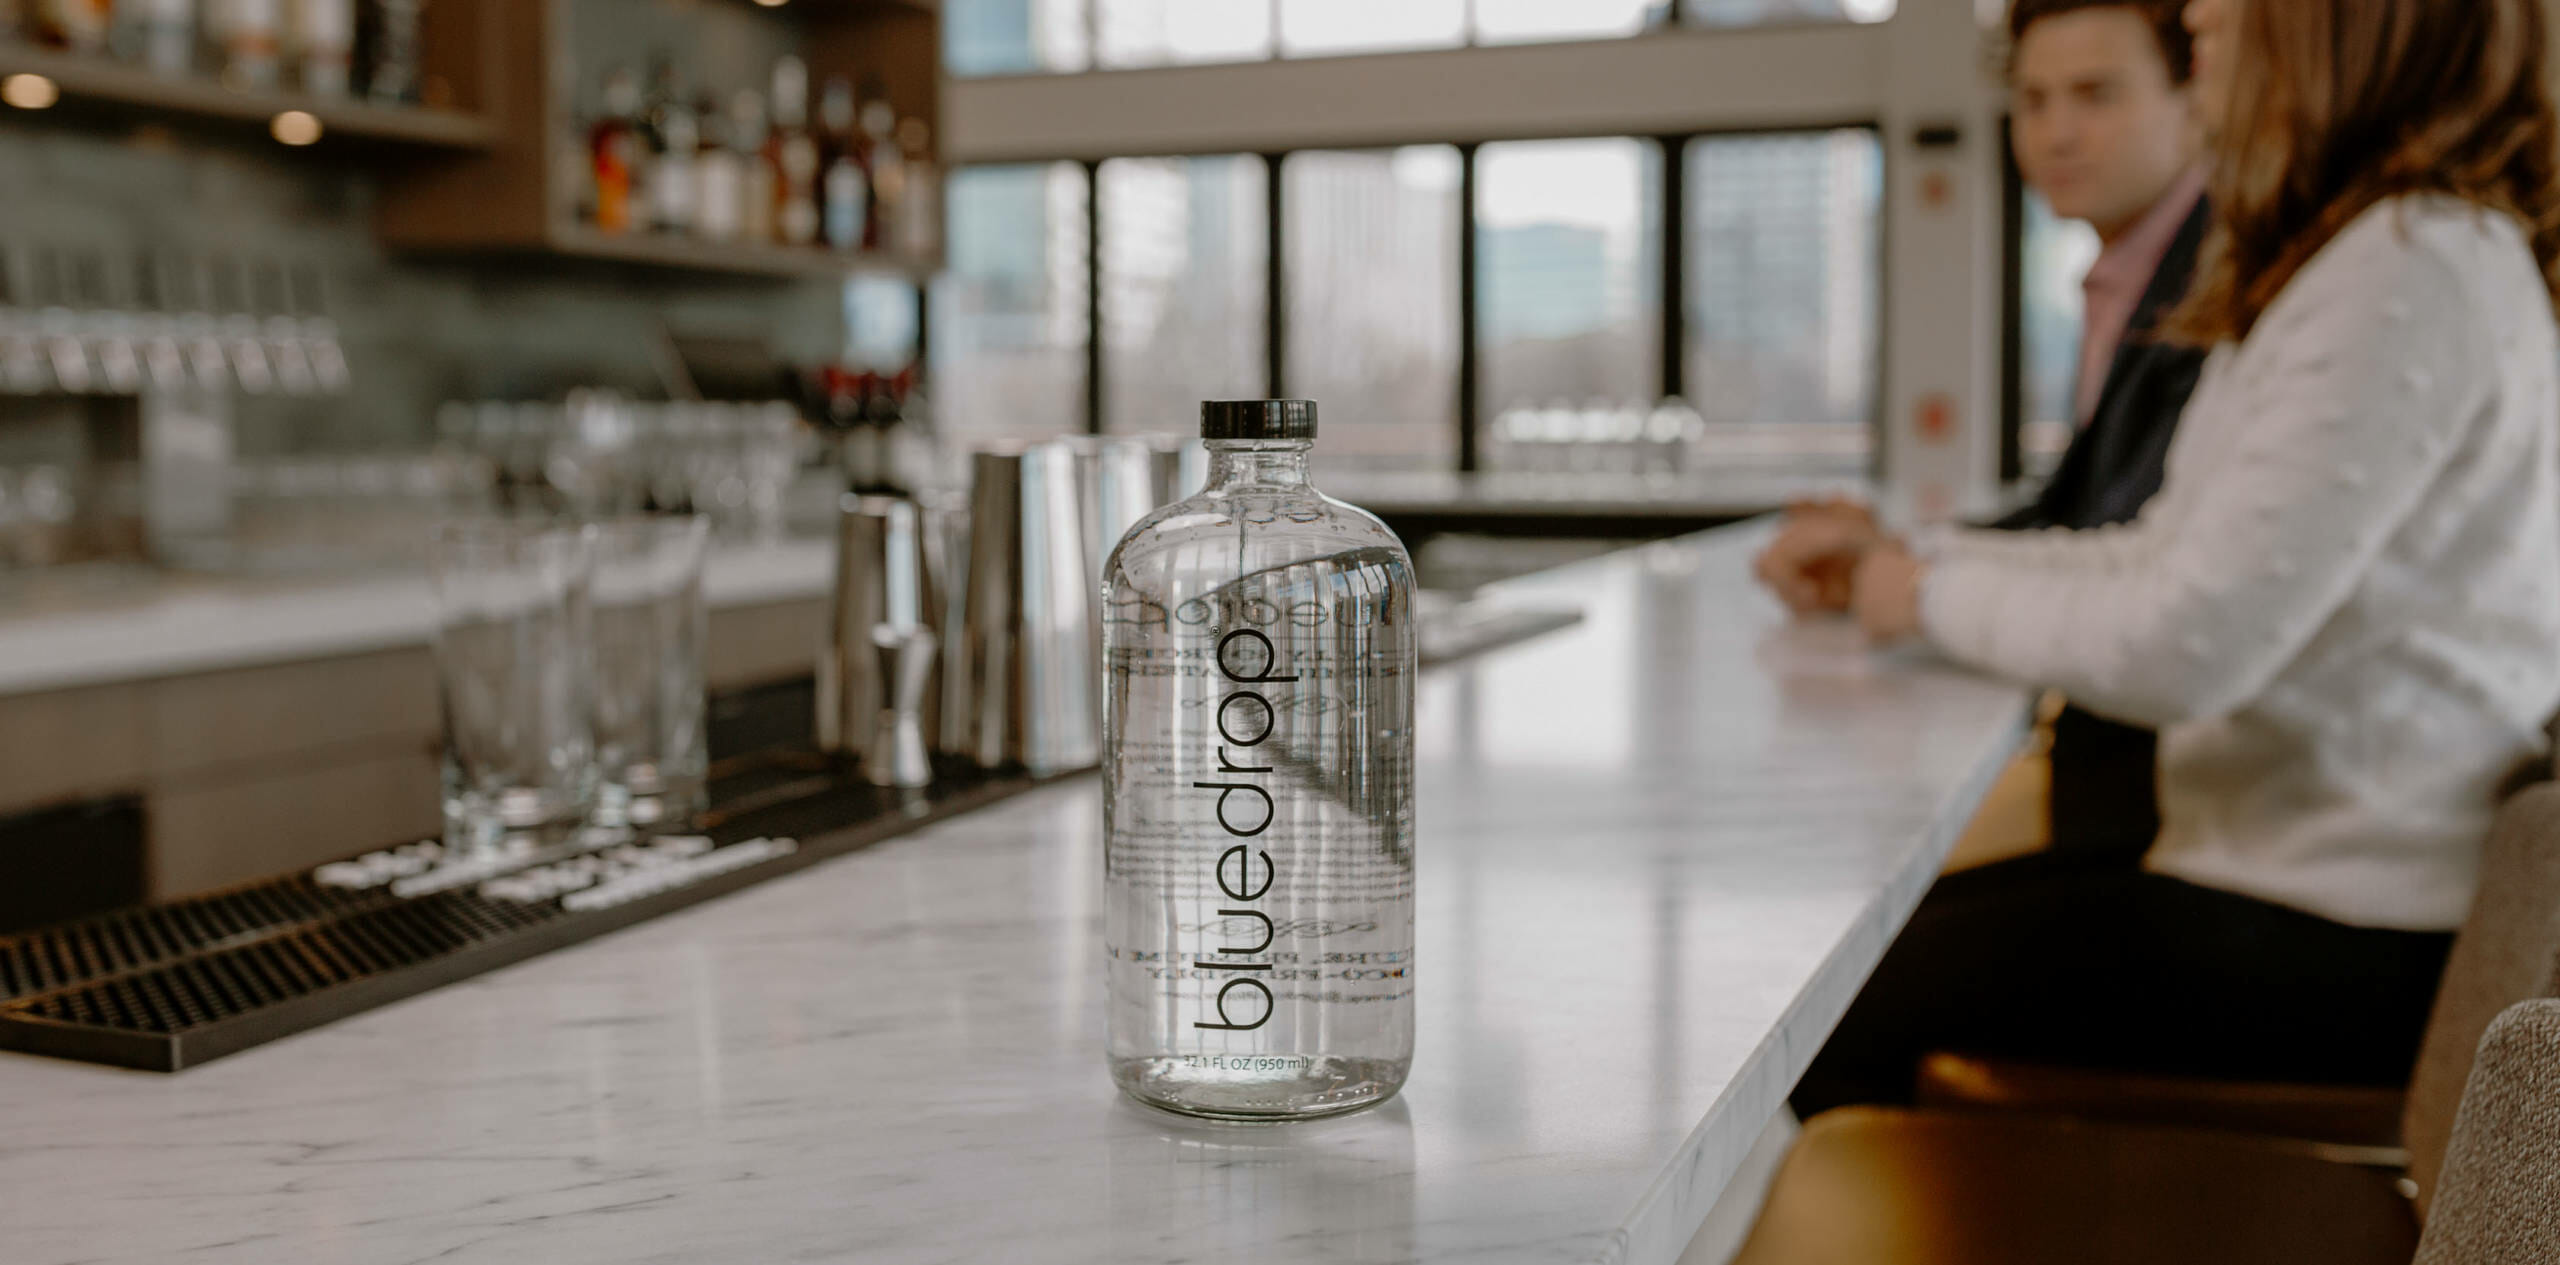 A bluedrop bottle of water sitting on a counter at a bar or restaurant.